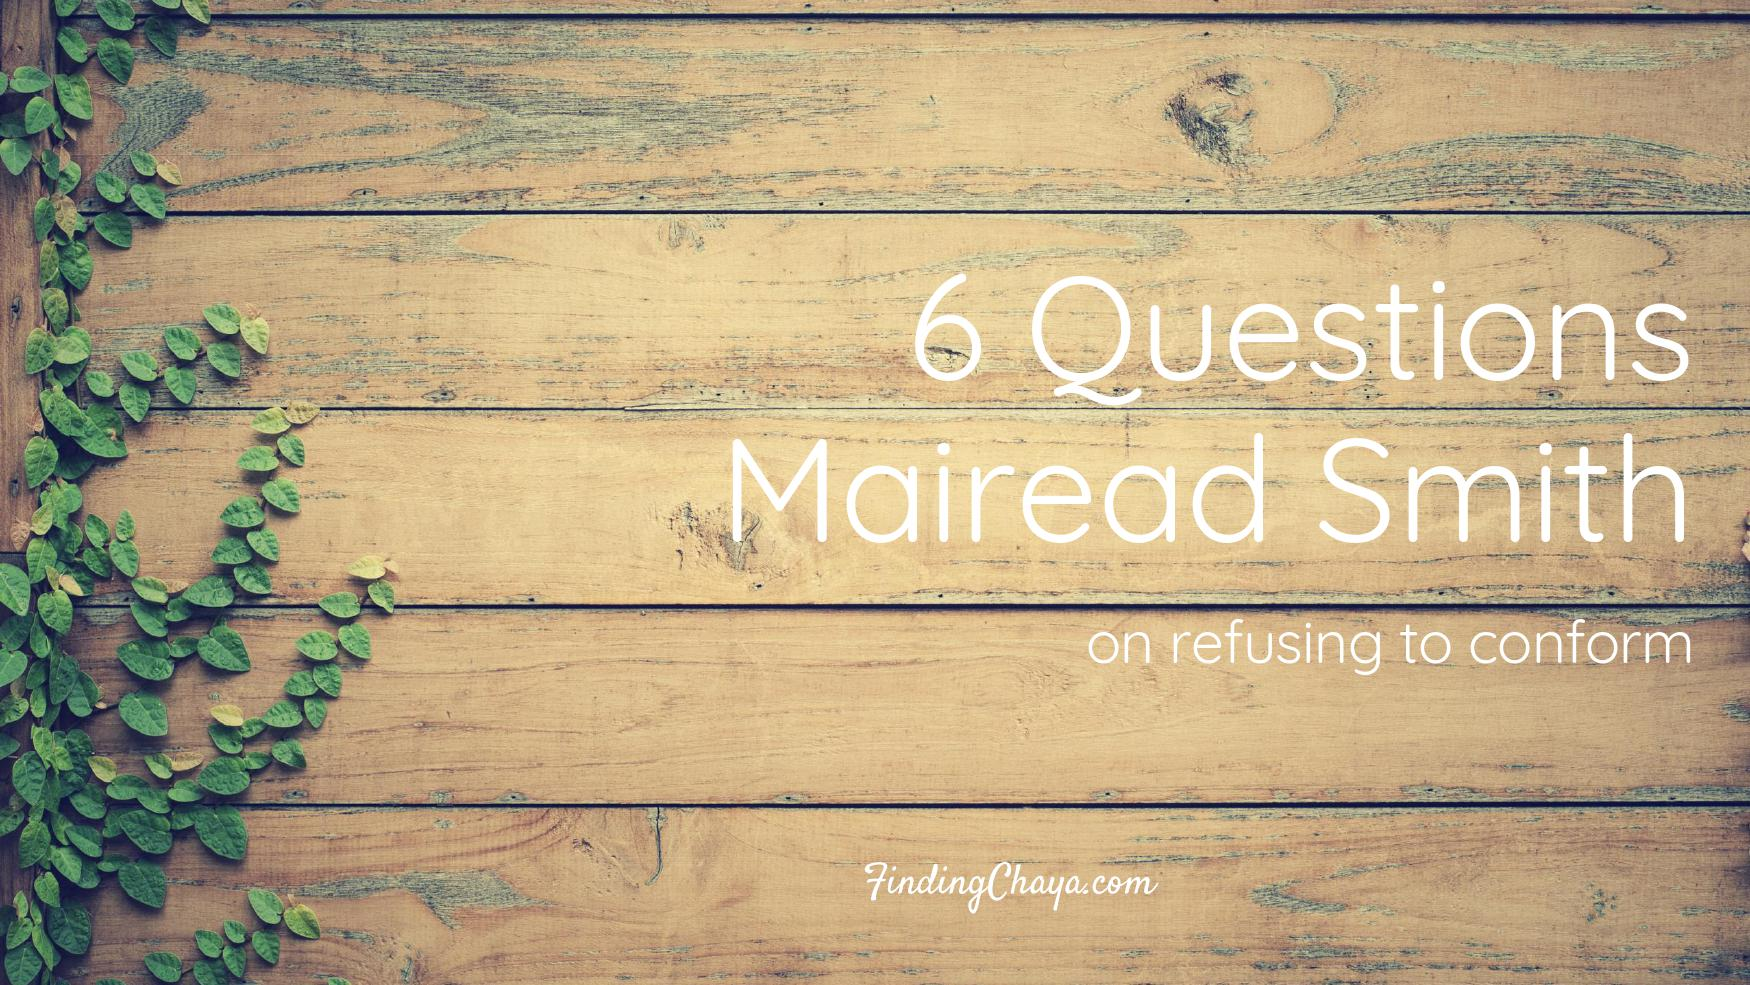 6 Questions with Mairead Smith